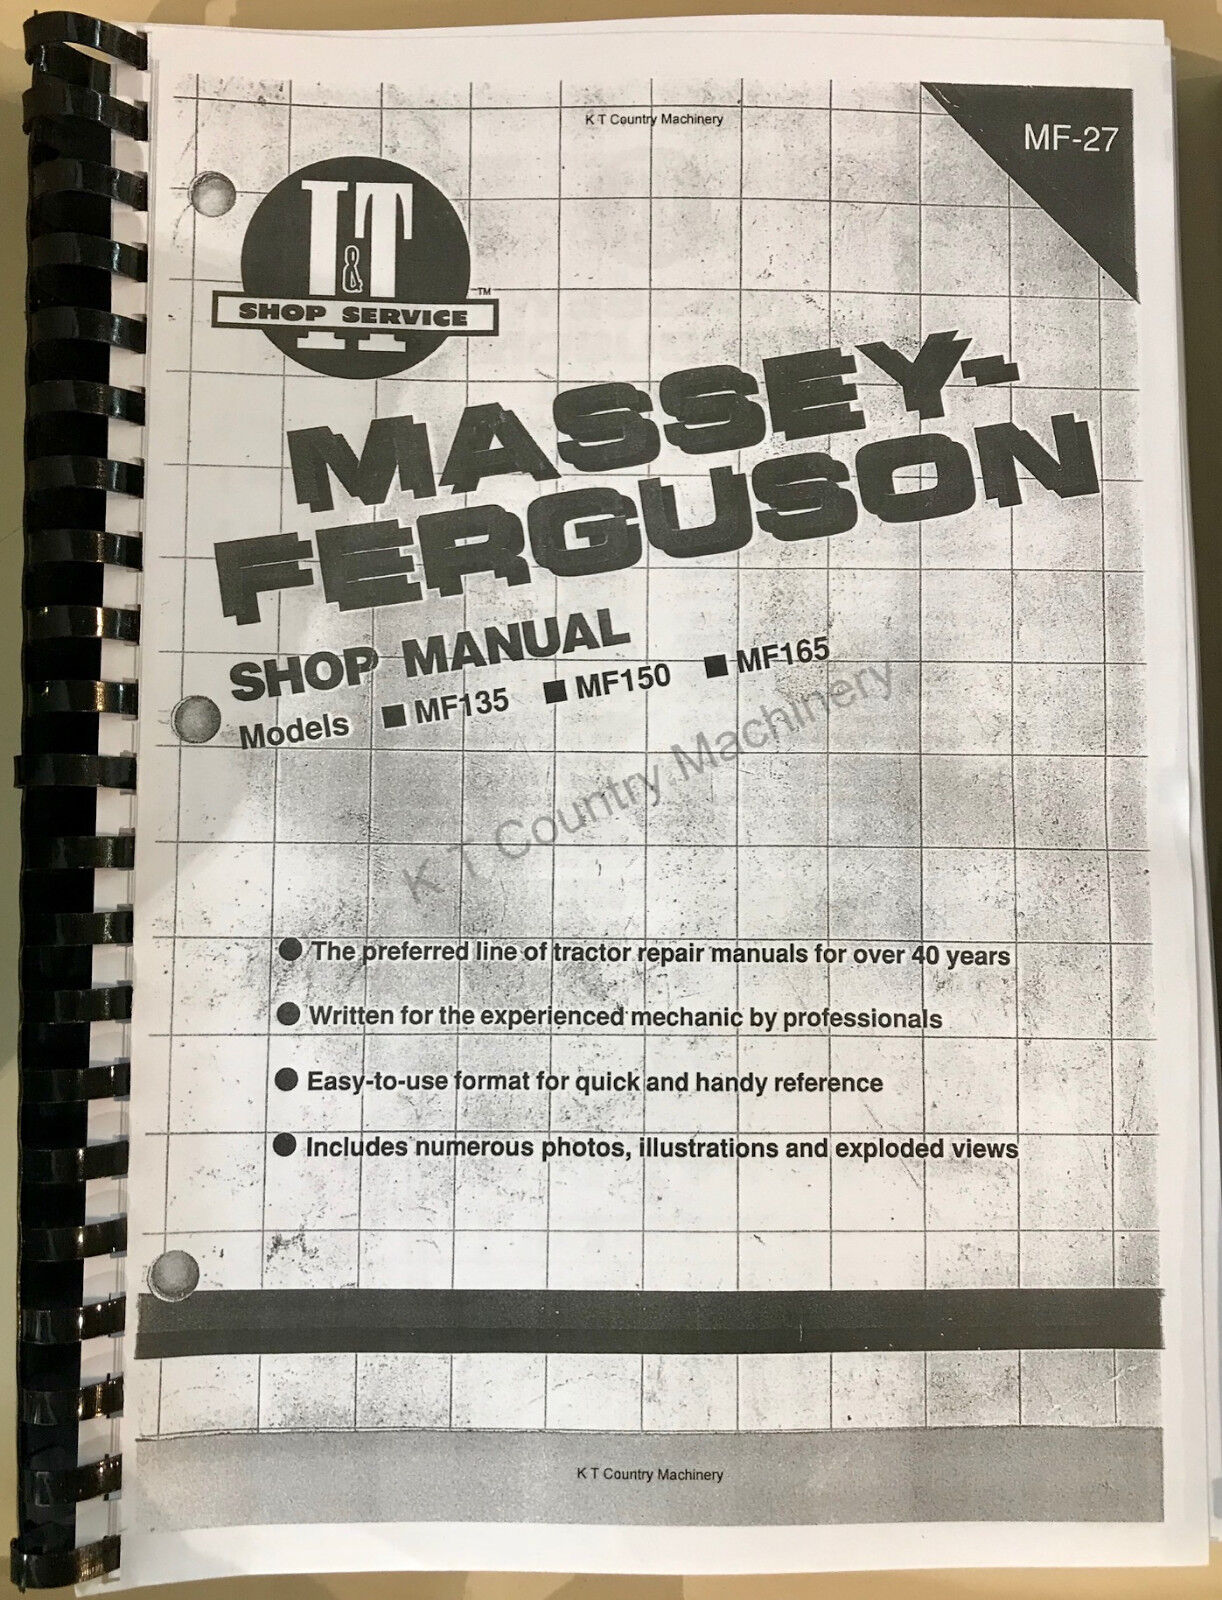 Massey 168 Workshop Manual Reprint 1856000m1 Business, Office & Industrial Massey Ferguson